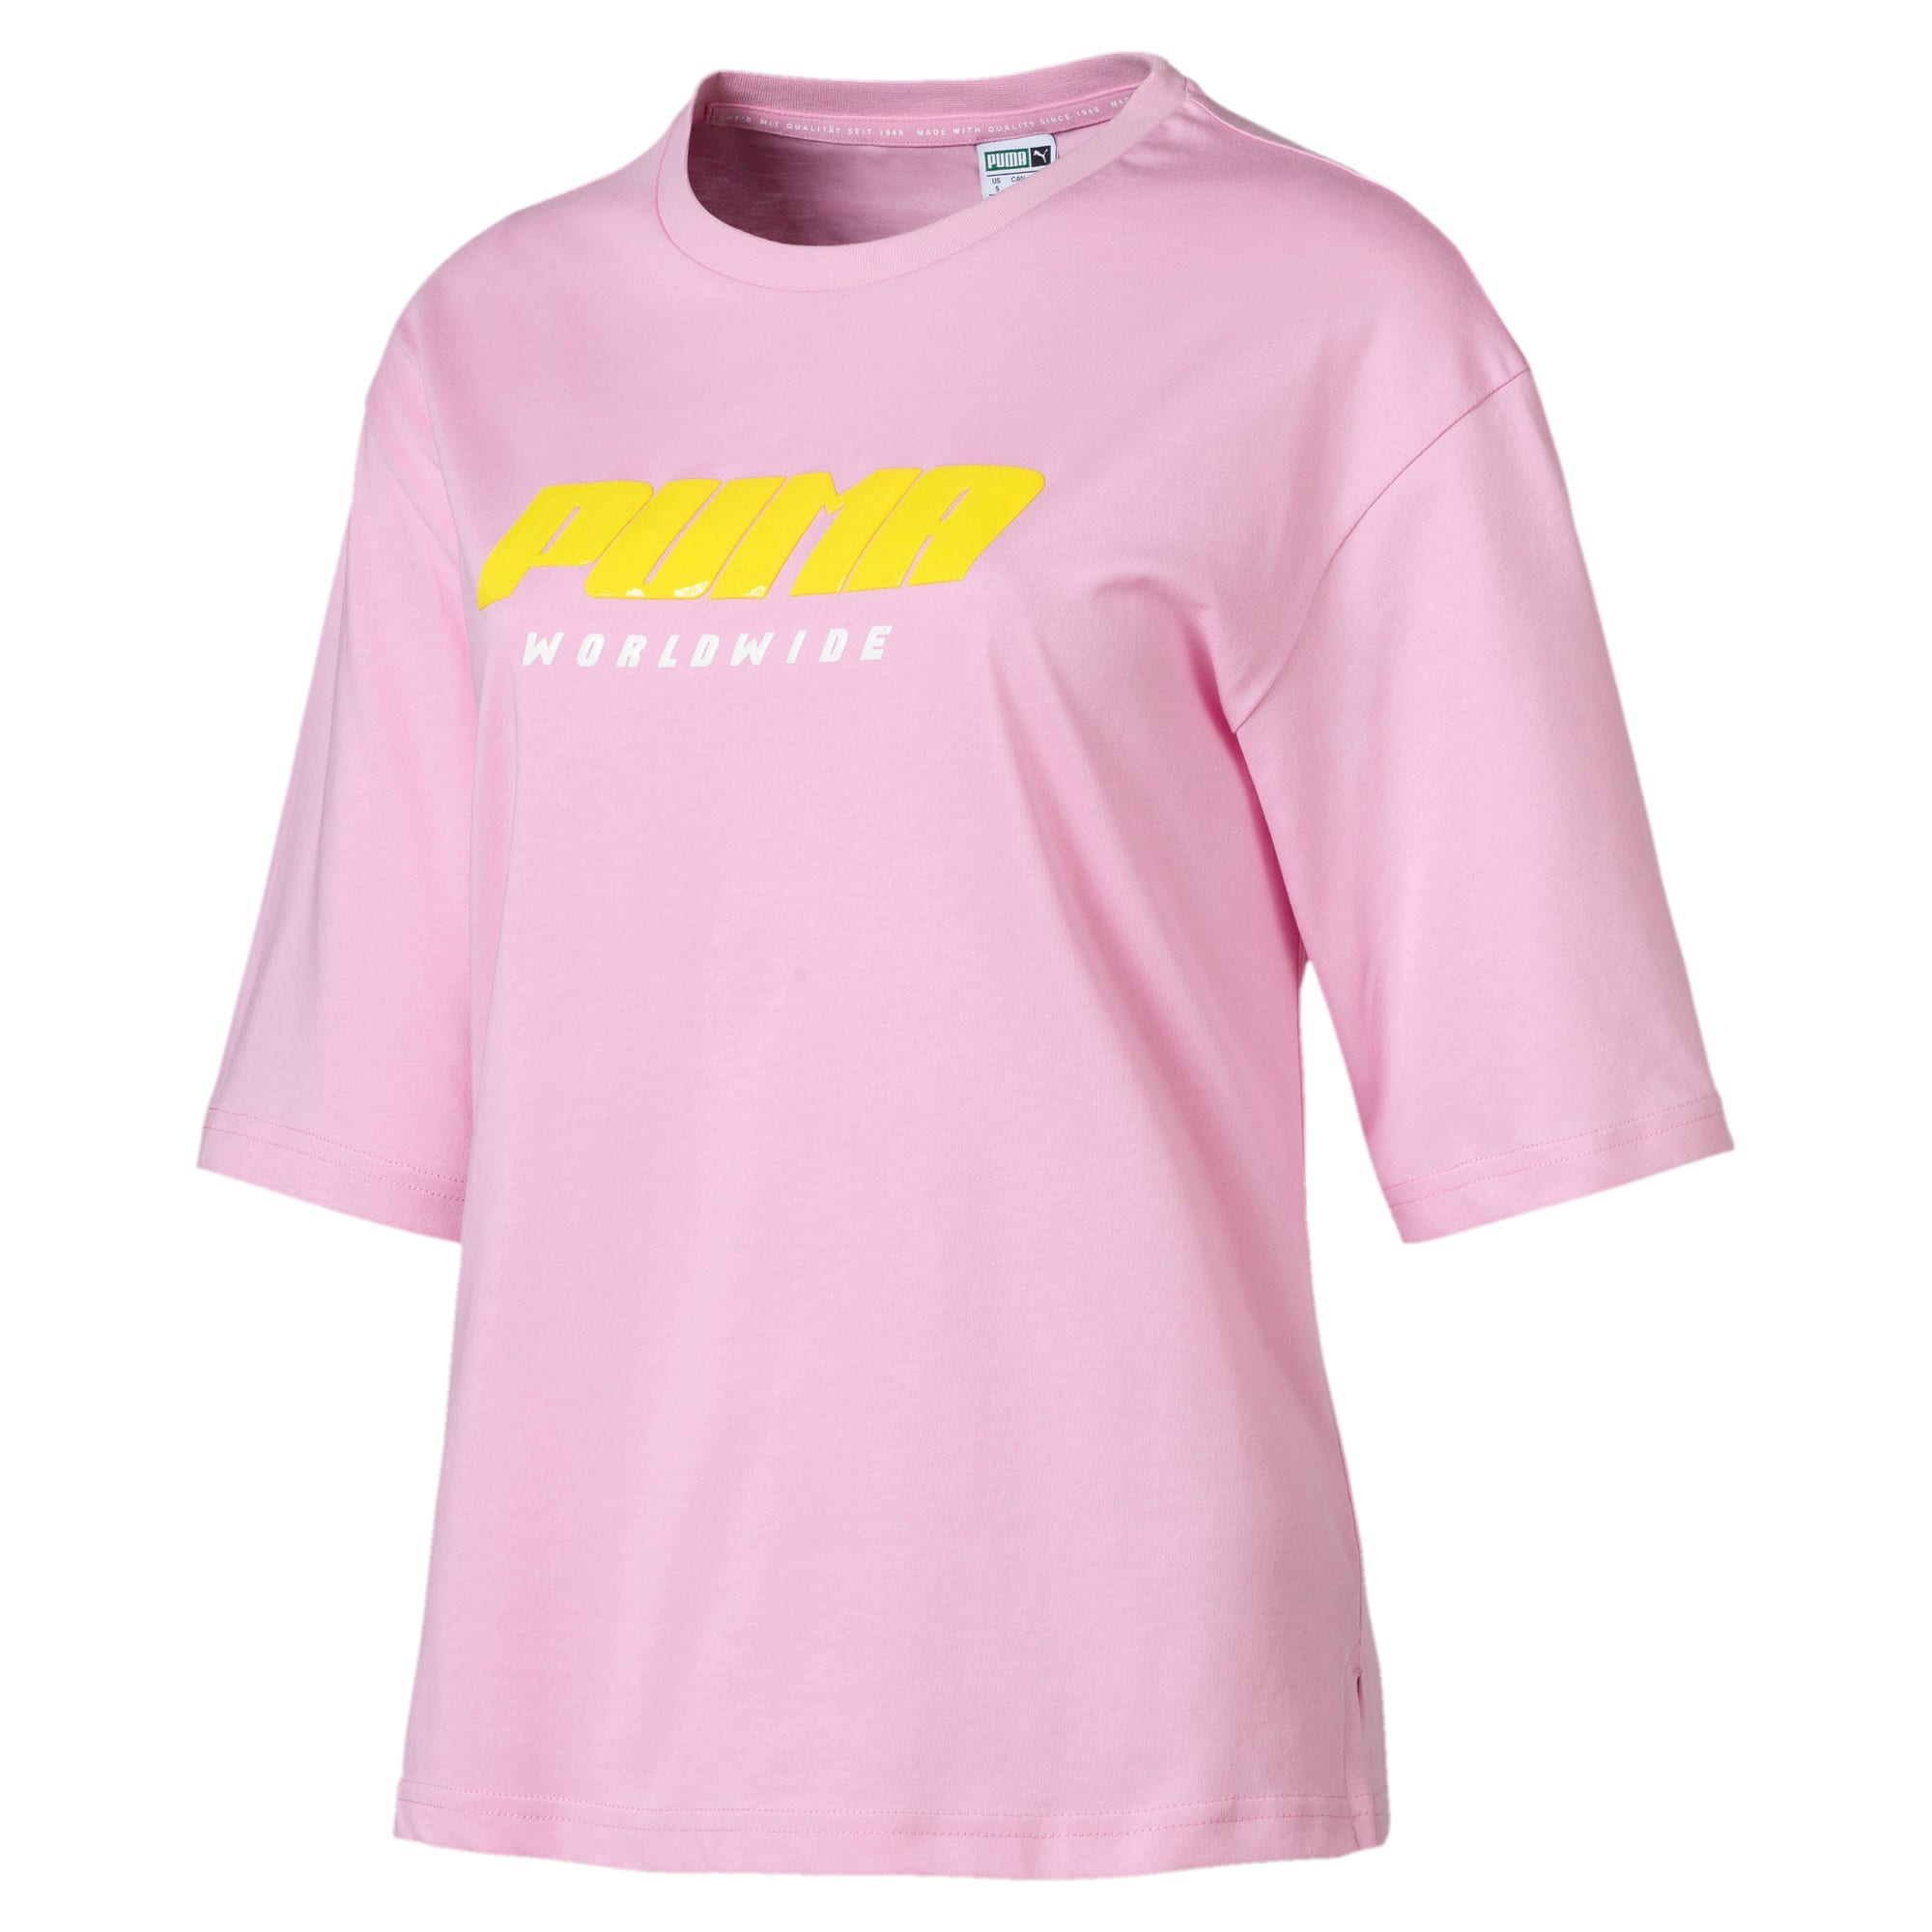 Thumbnail 4 of Trailblazer Women's Tee, Pale Pink, medium